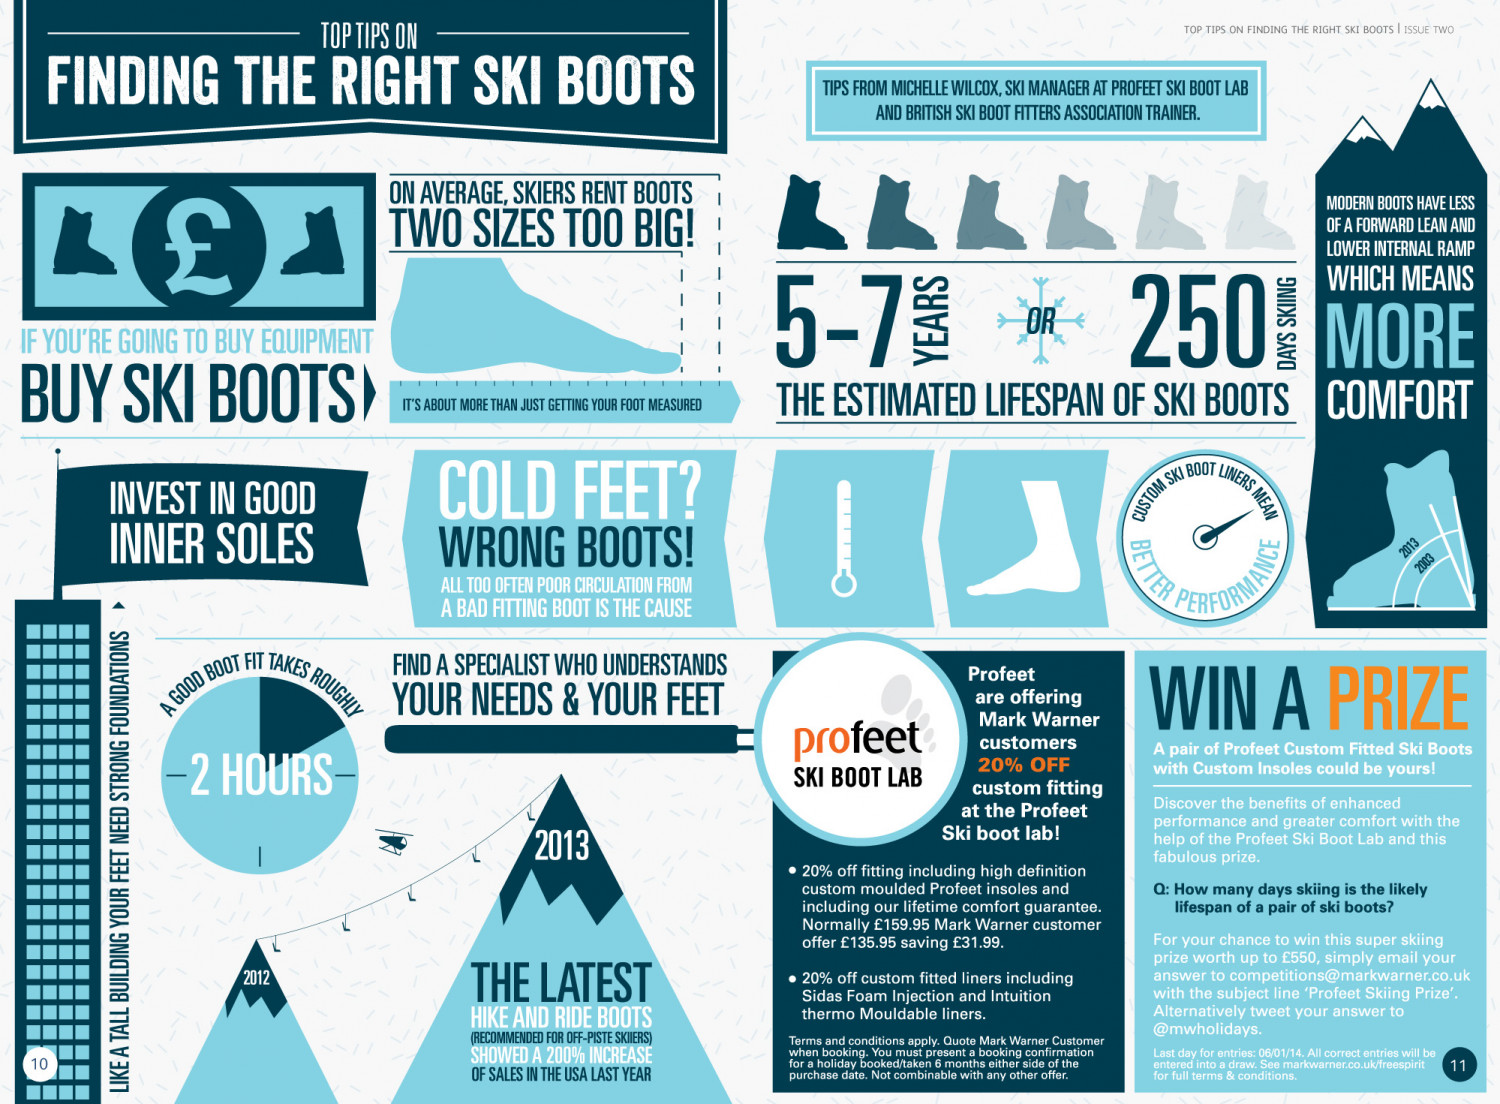 How To Find The Right Ski Boots Infographic